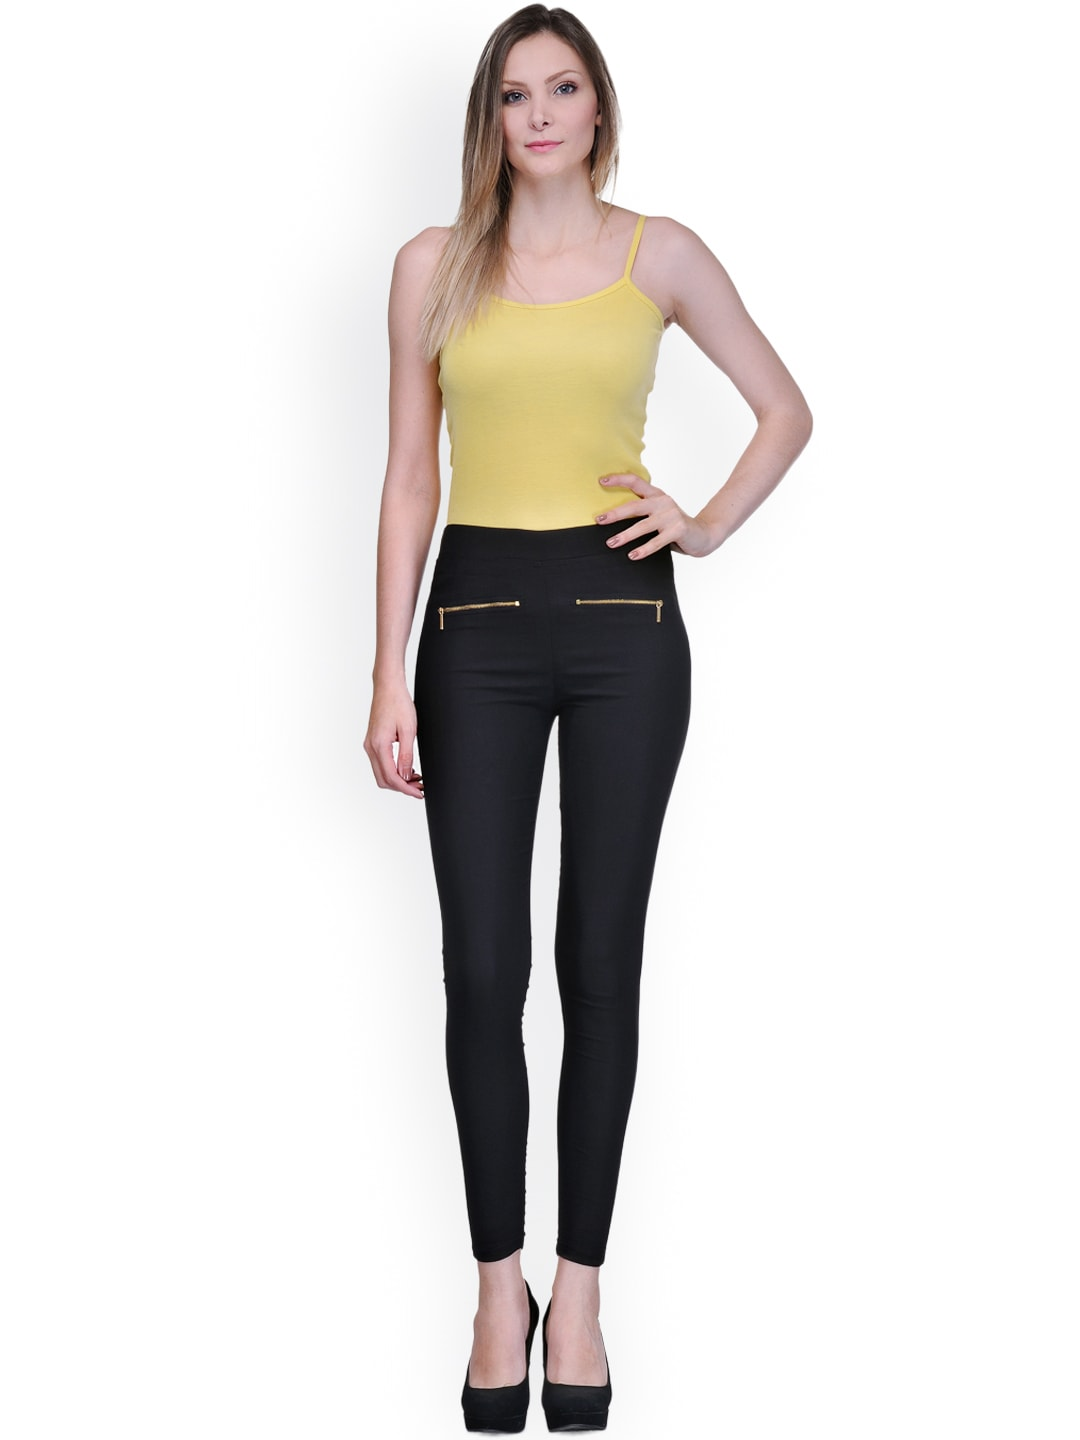 - Jeggings - Buy Jeggings For Women Online From Myntra